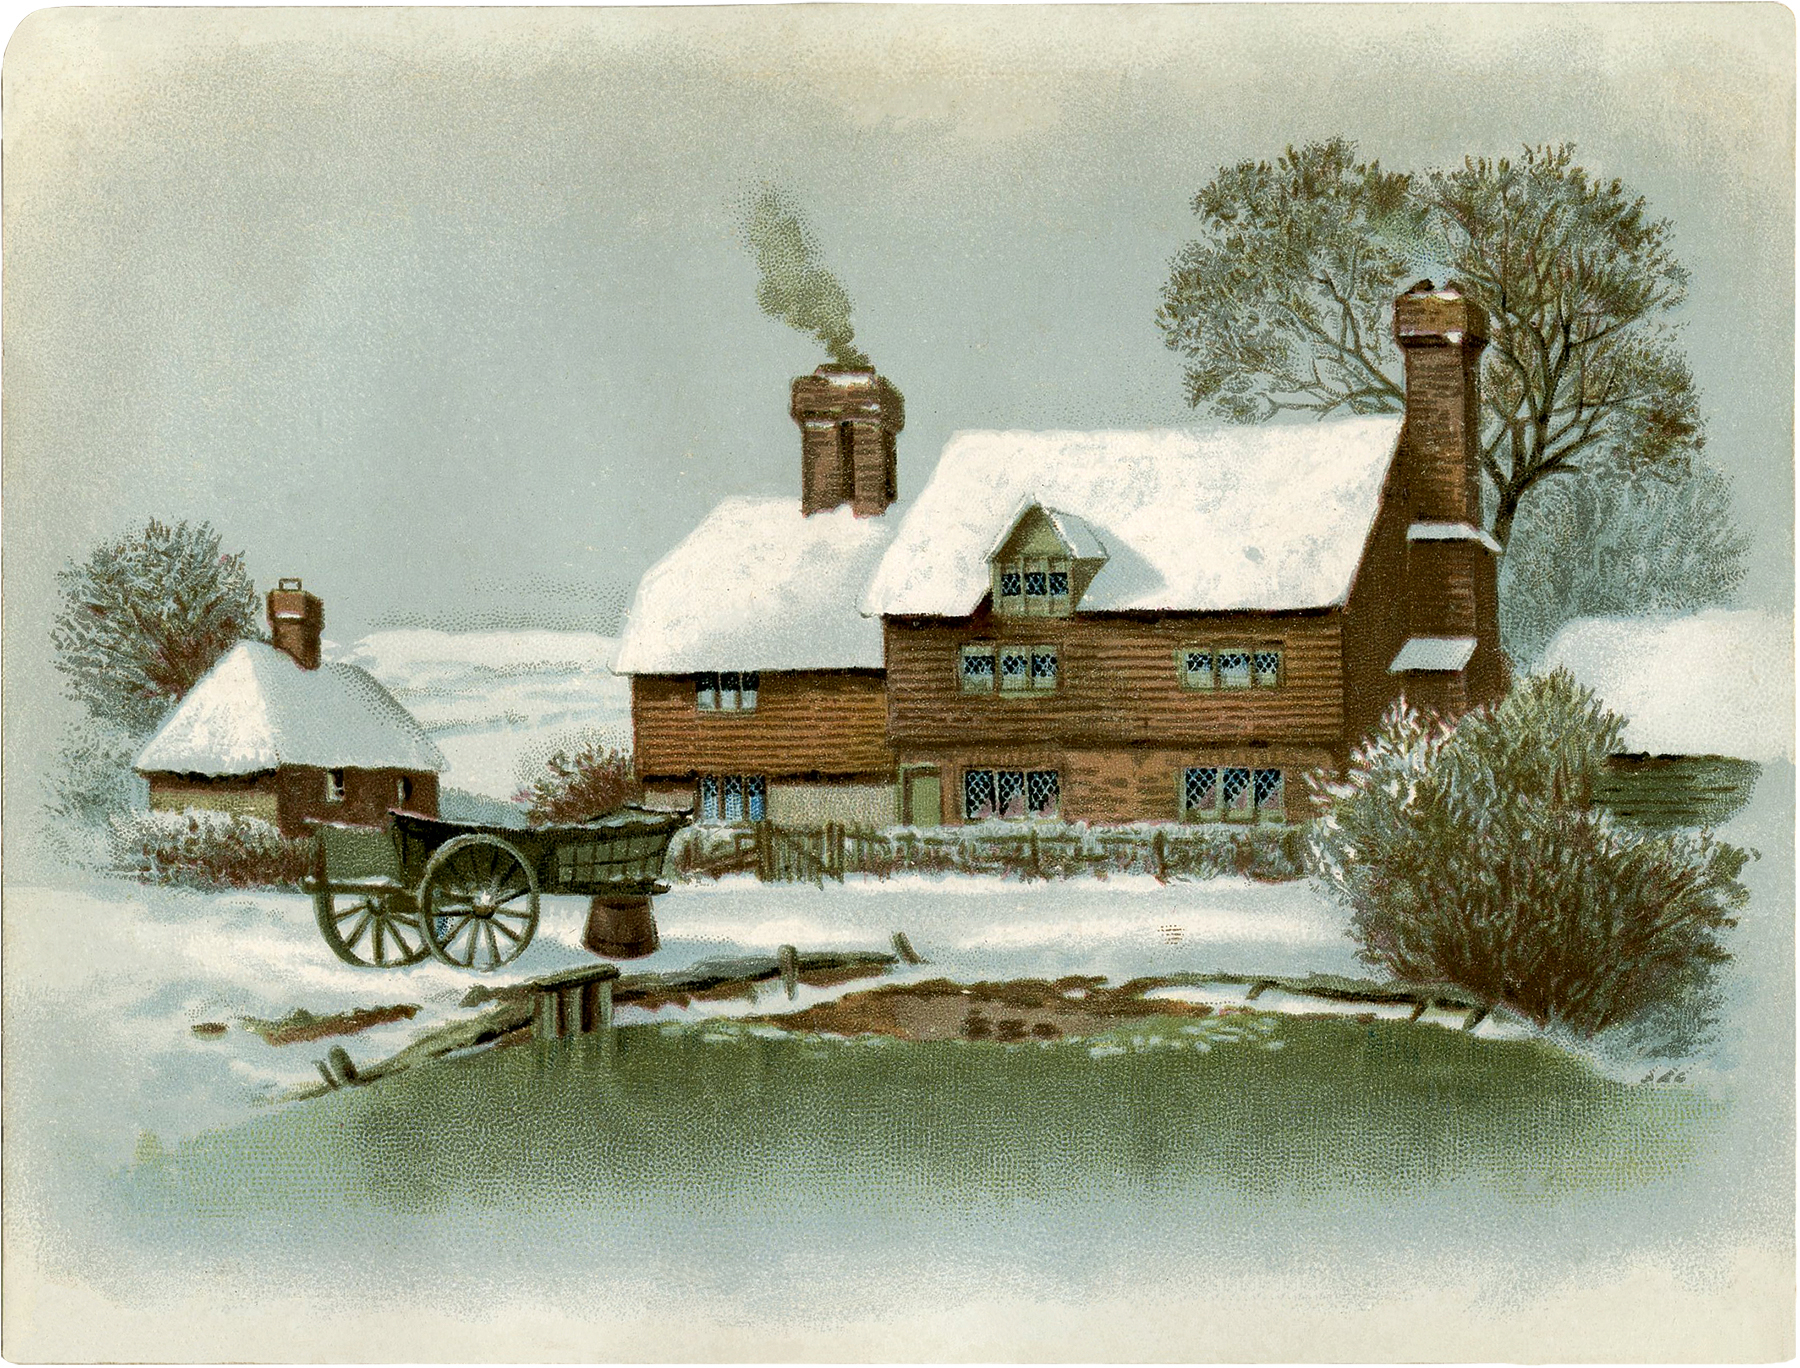 Vintage tudor cottage image winter the graphics fairy - Cottage image ...